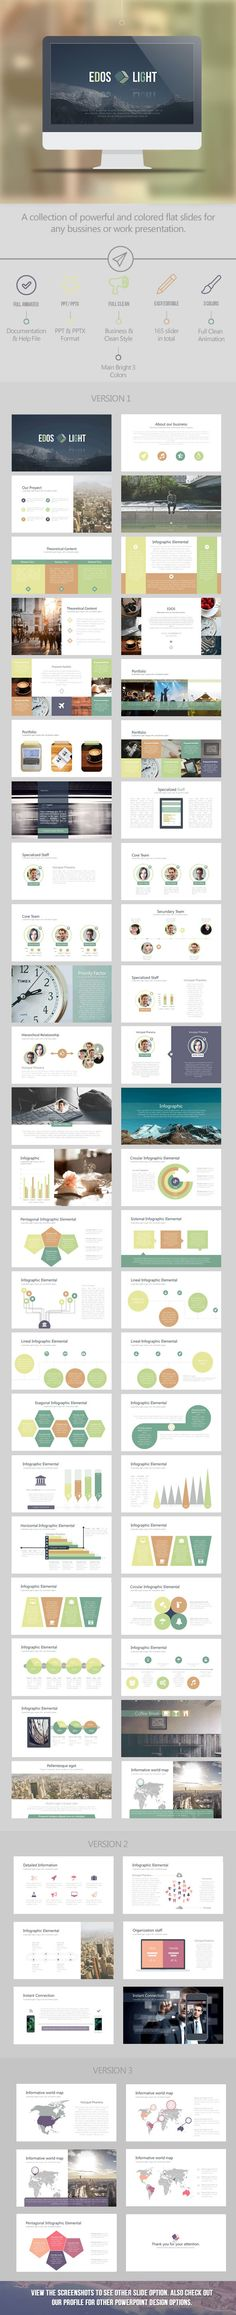 Edos Light Business PowerPoint Template / Theme / Presentation / Slides / Background / Power Point